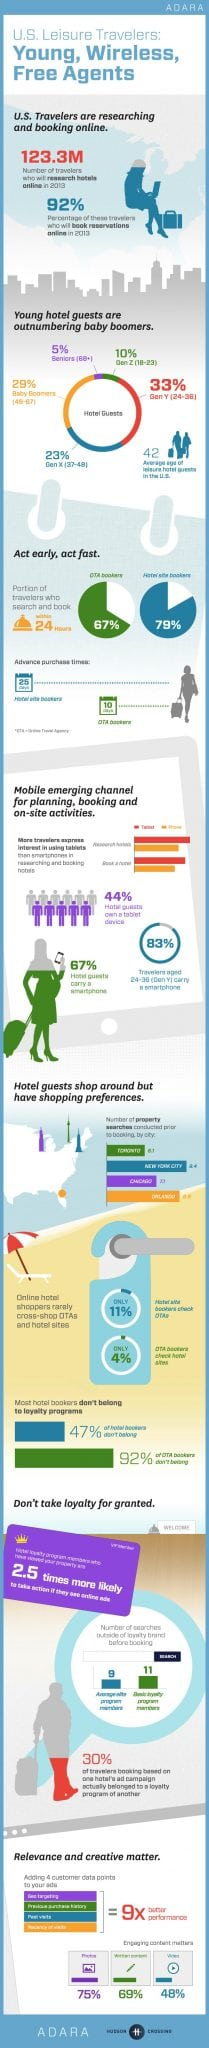 infographic-us-leisure-trends-2013-1